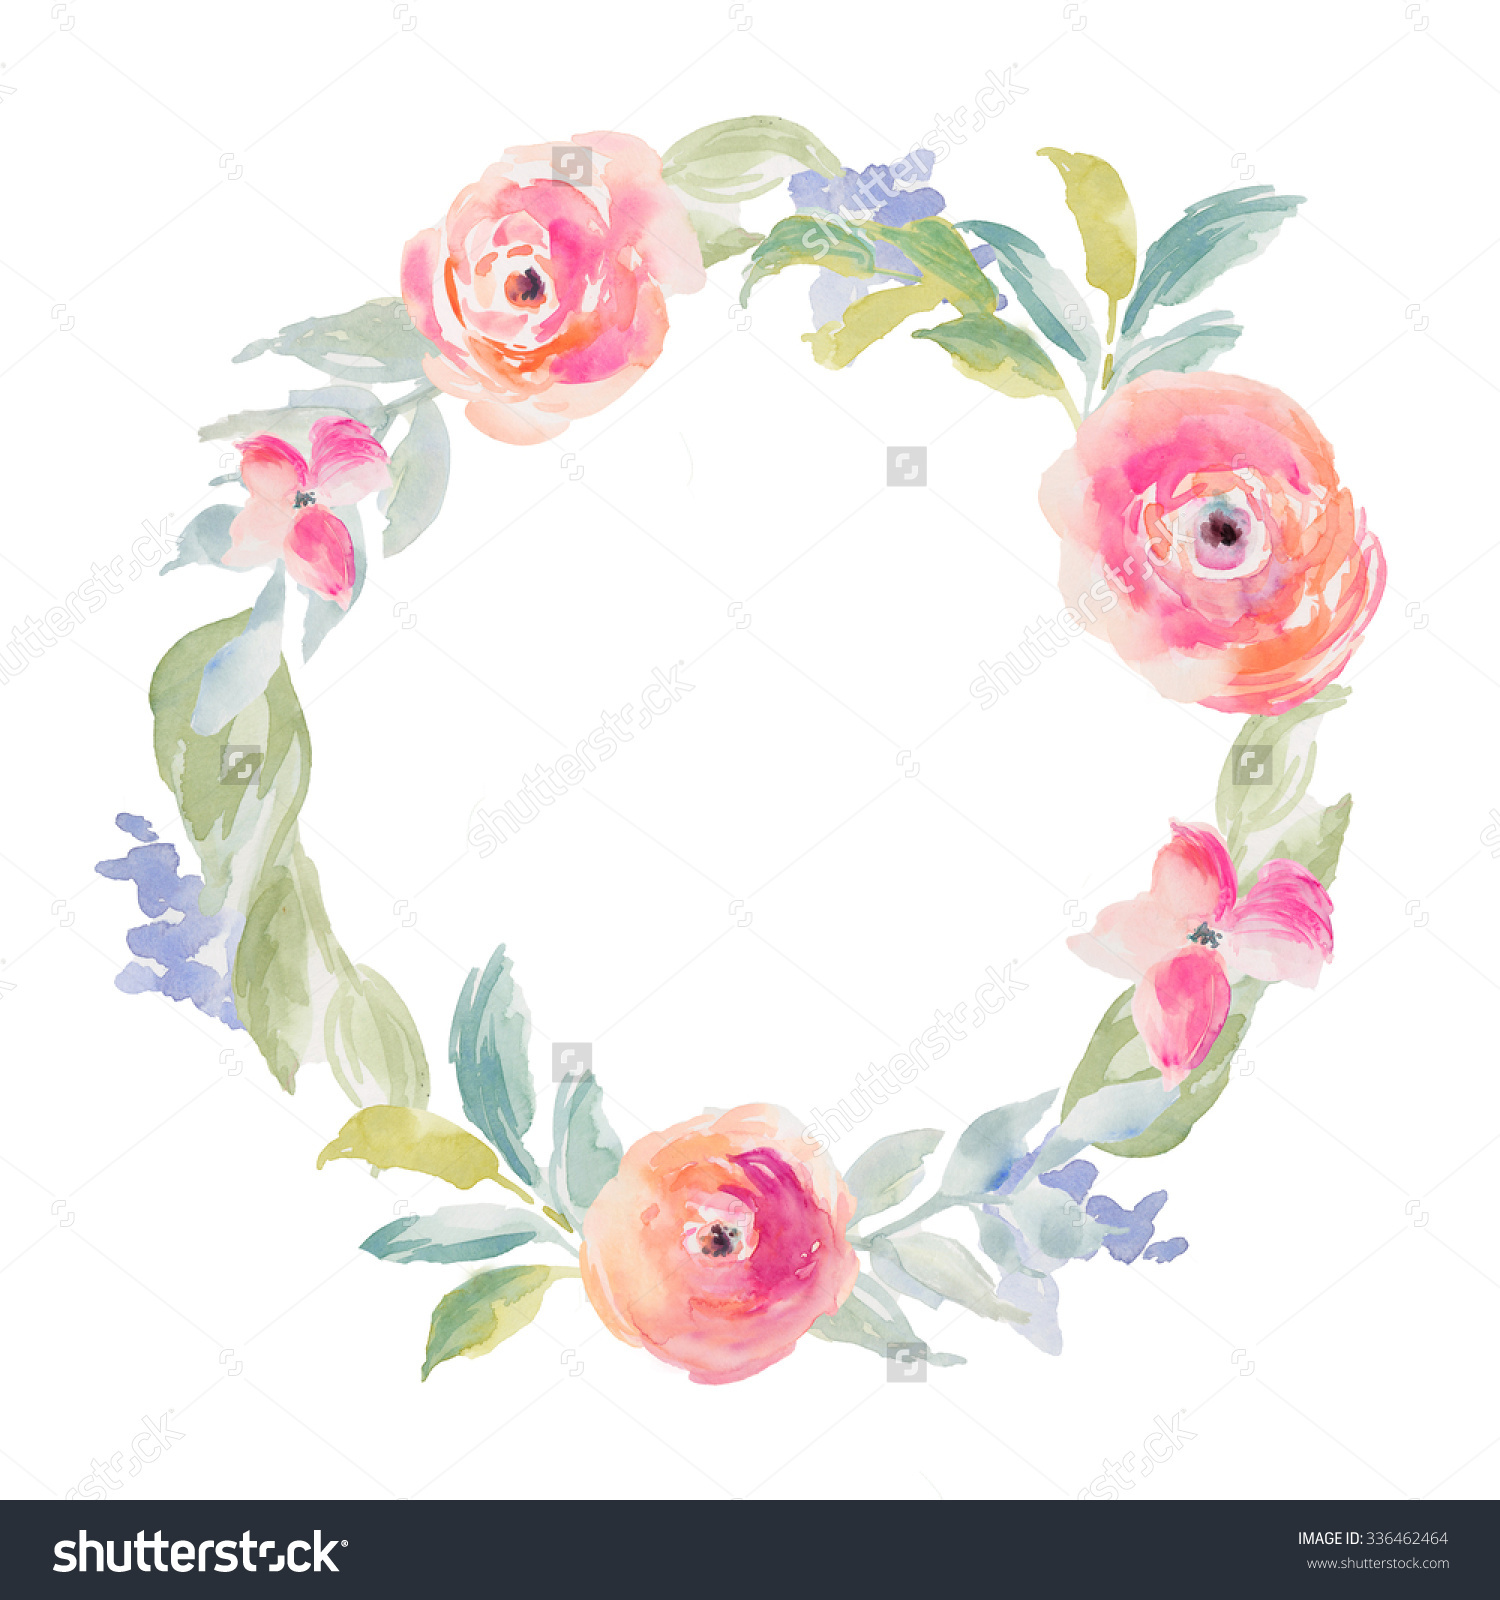 Watercolor Flower Frame Watercolor Flower Wreath Stock.